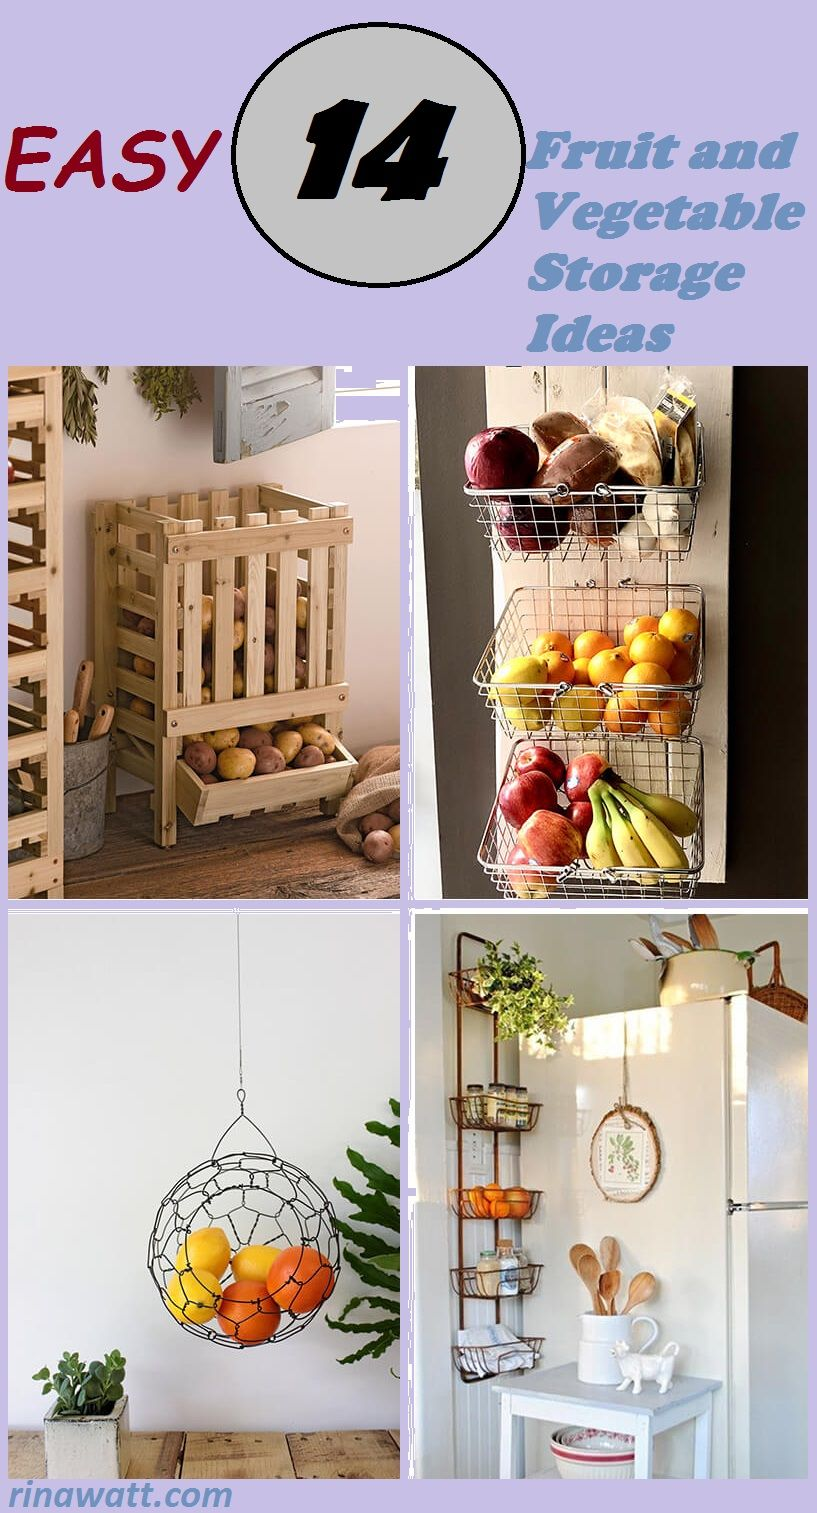 14 fruit and vegetable storage ideas to make your kitchen a whole lot more organized